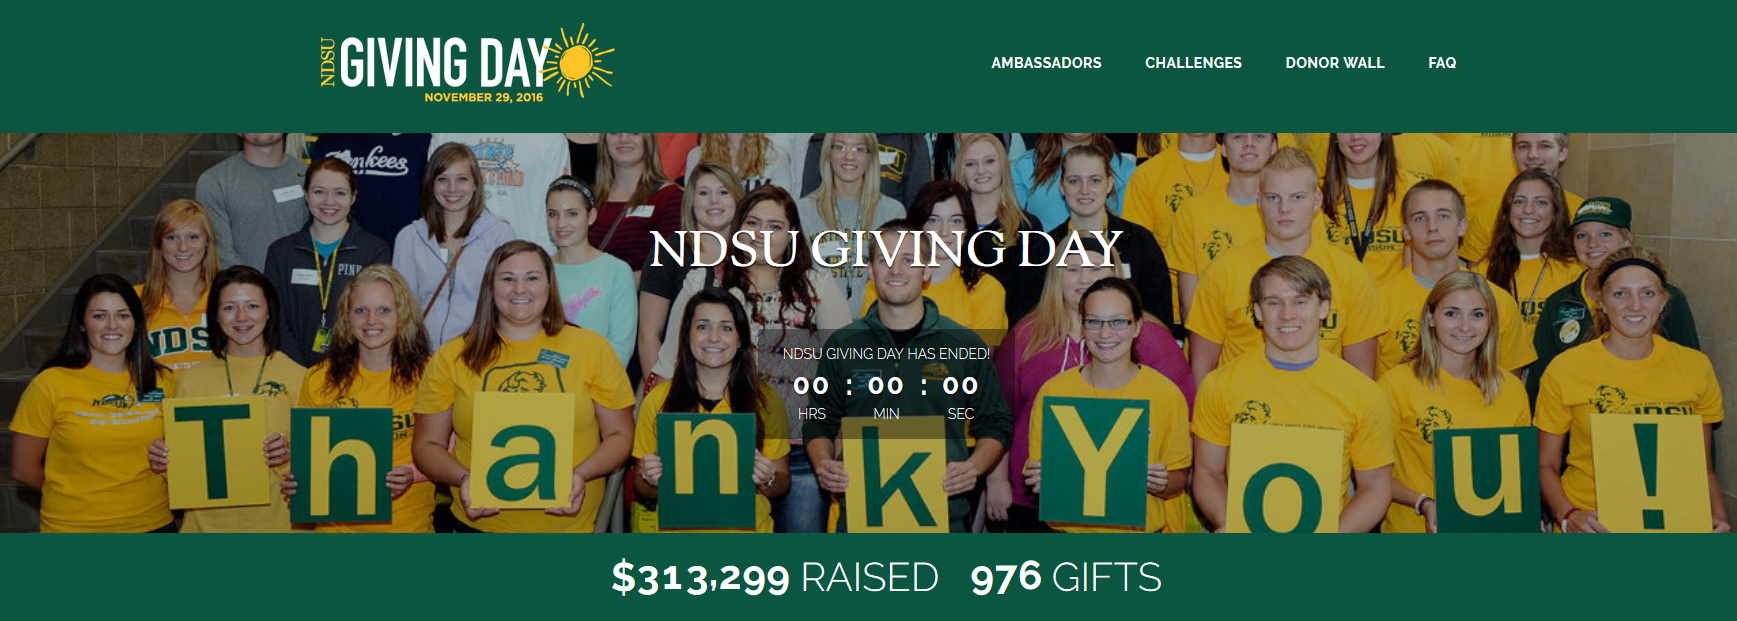 North Dakota State University Giving Day Case Study